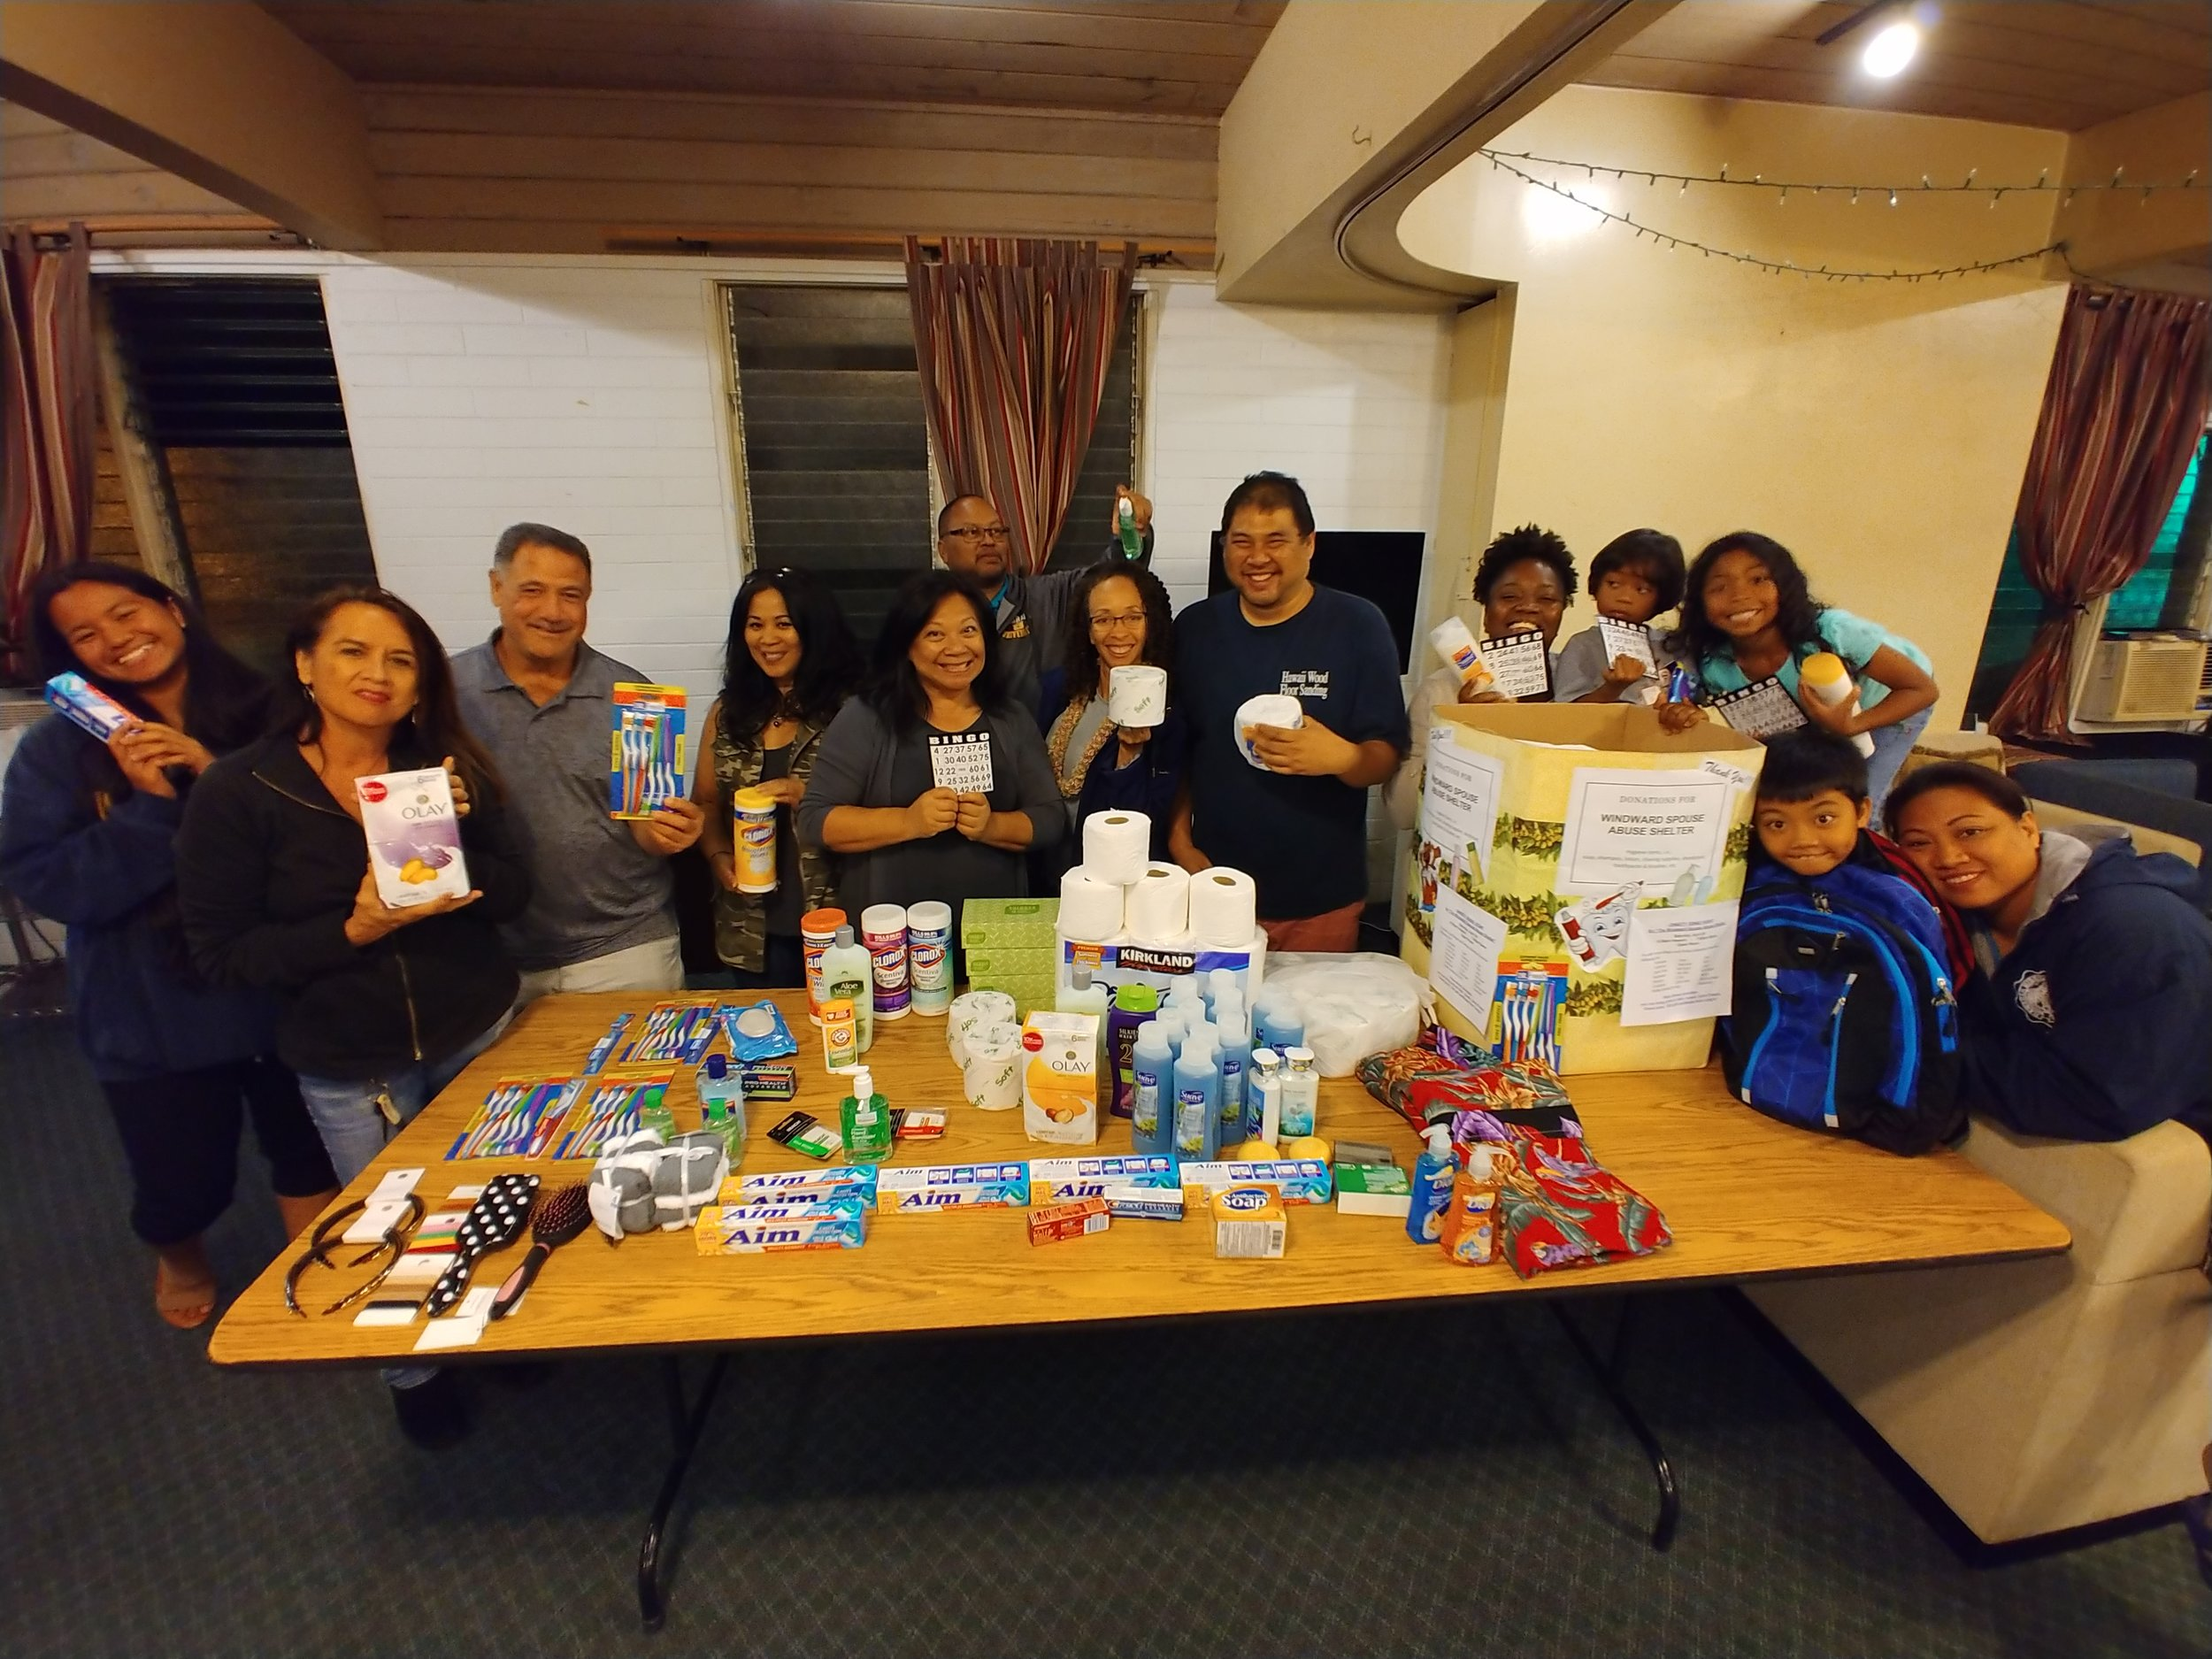 April Charity Bingo Night collected donations for the Hawaii Women's & Children's Abuse Shelter in Kailua.